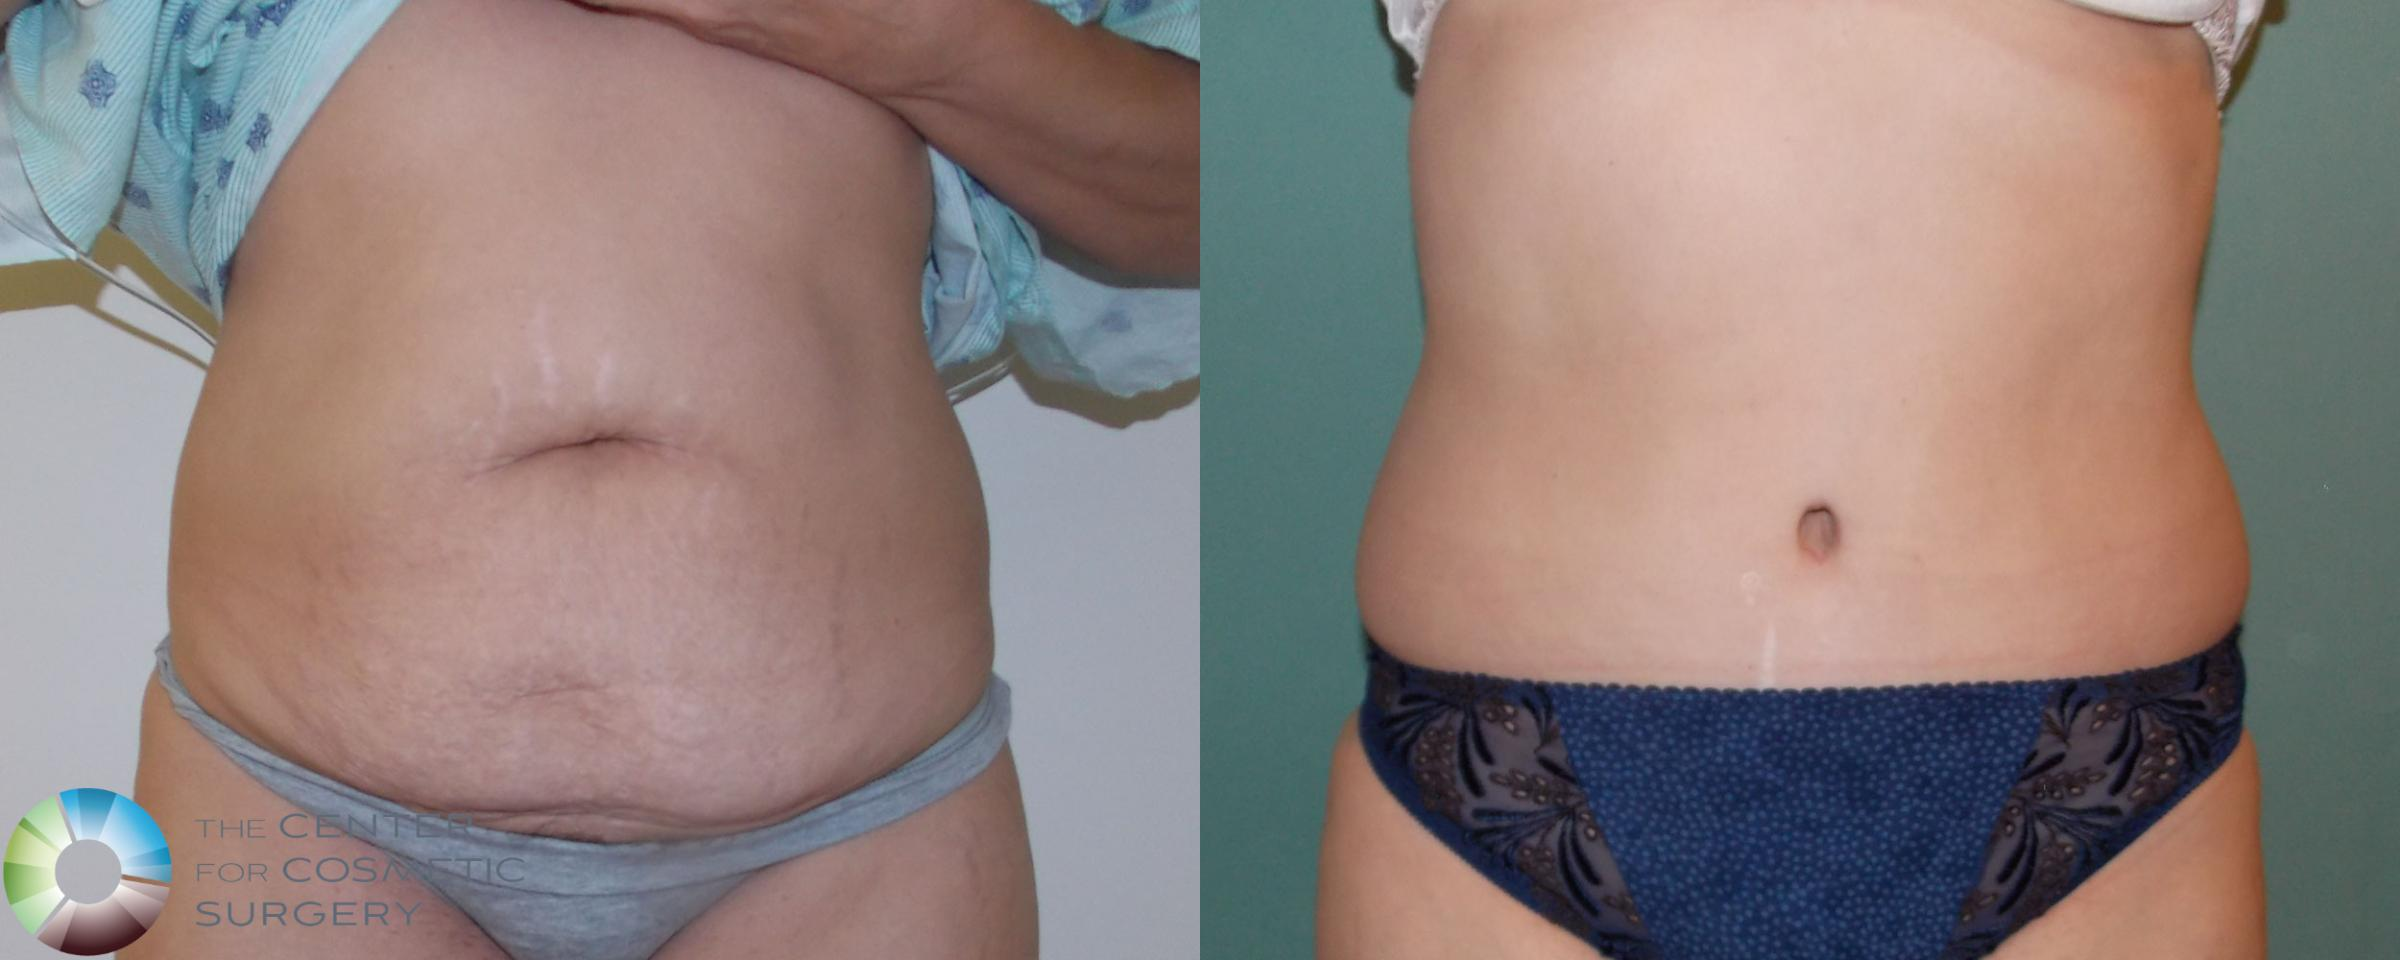 Tummy Tuck Case 685 Before & After View #1 | Golden, CO | The Center for Cosmetic Surgery